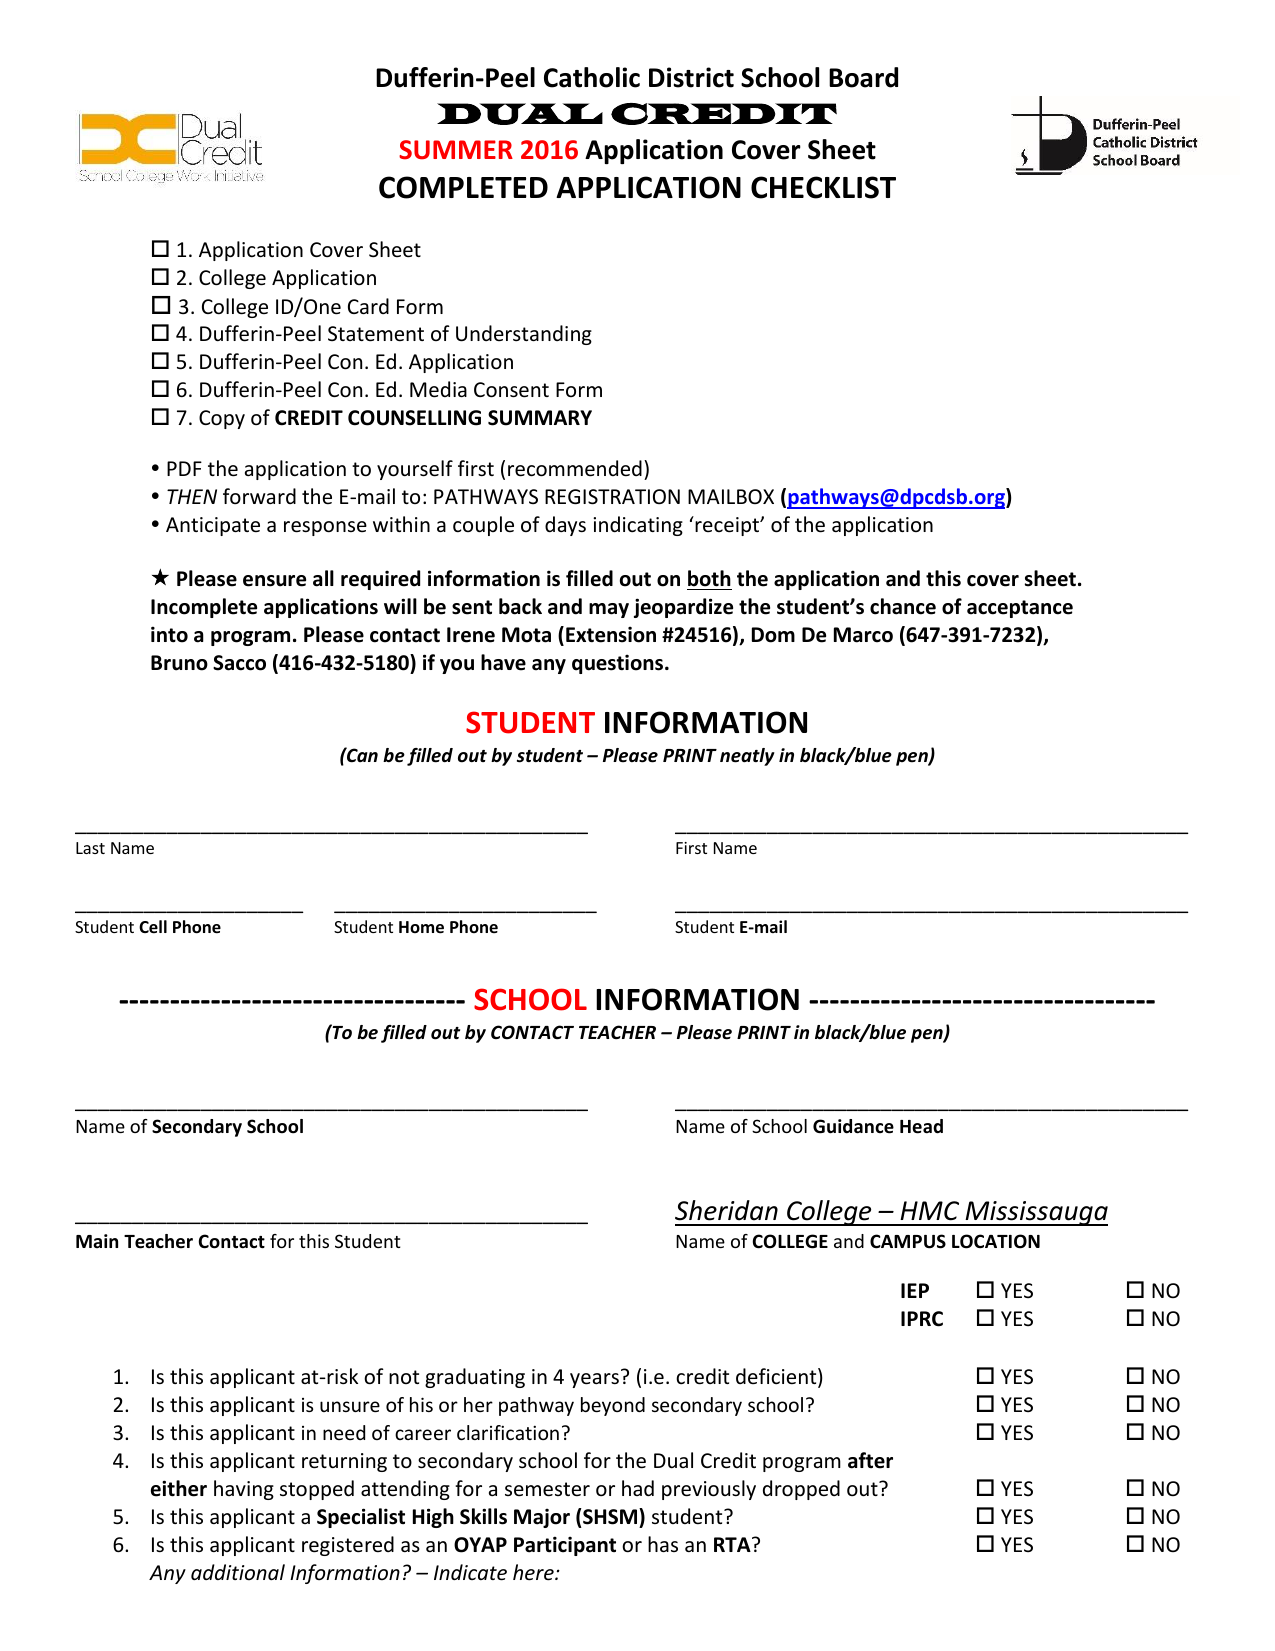 completed application checklist dufferin peel catholic district completed application checklist dufferin peel catholic district school board application cover sheet